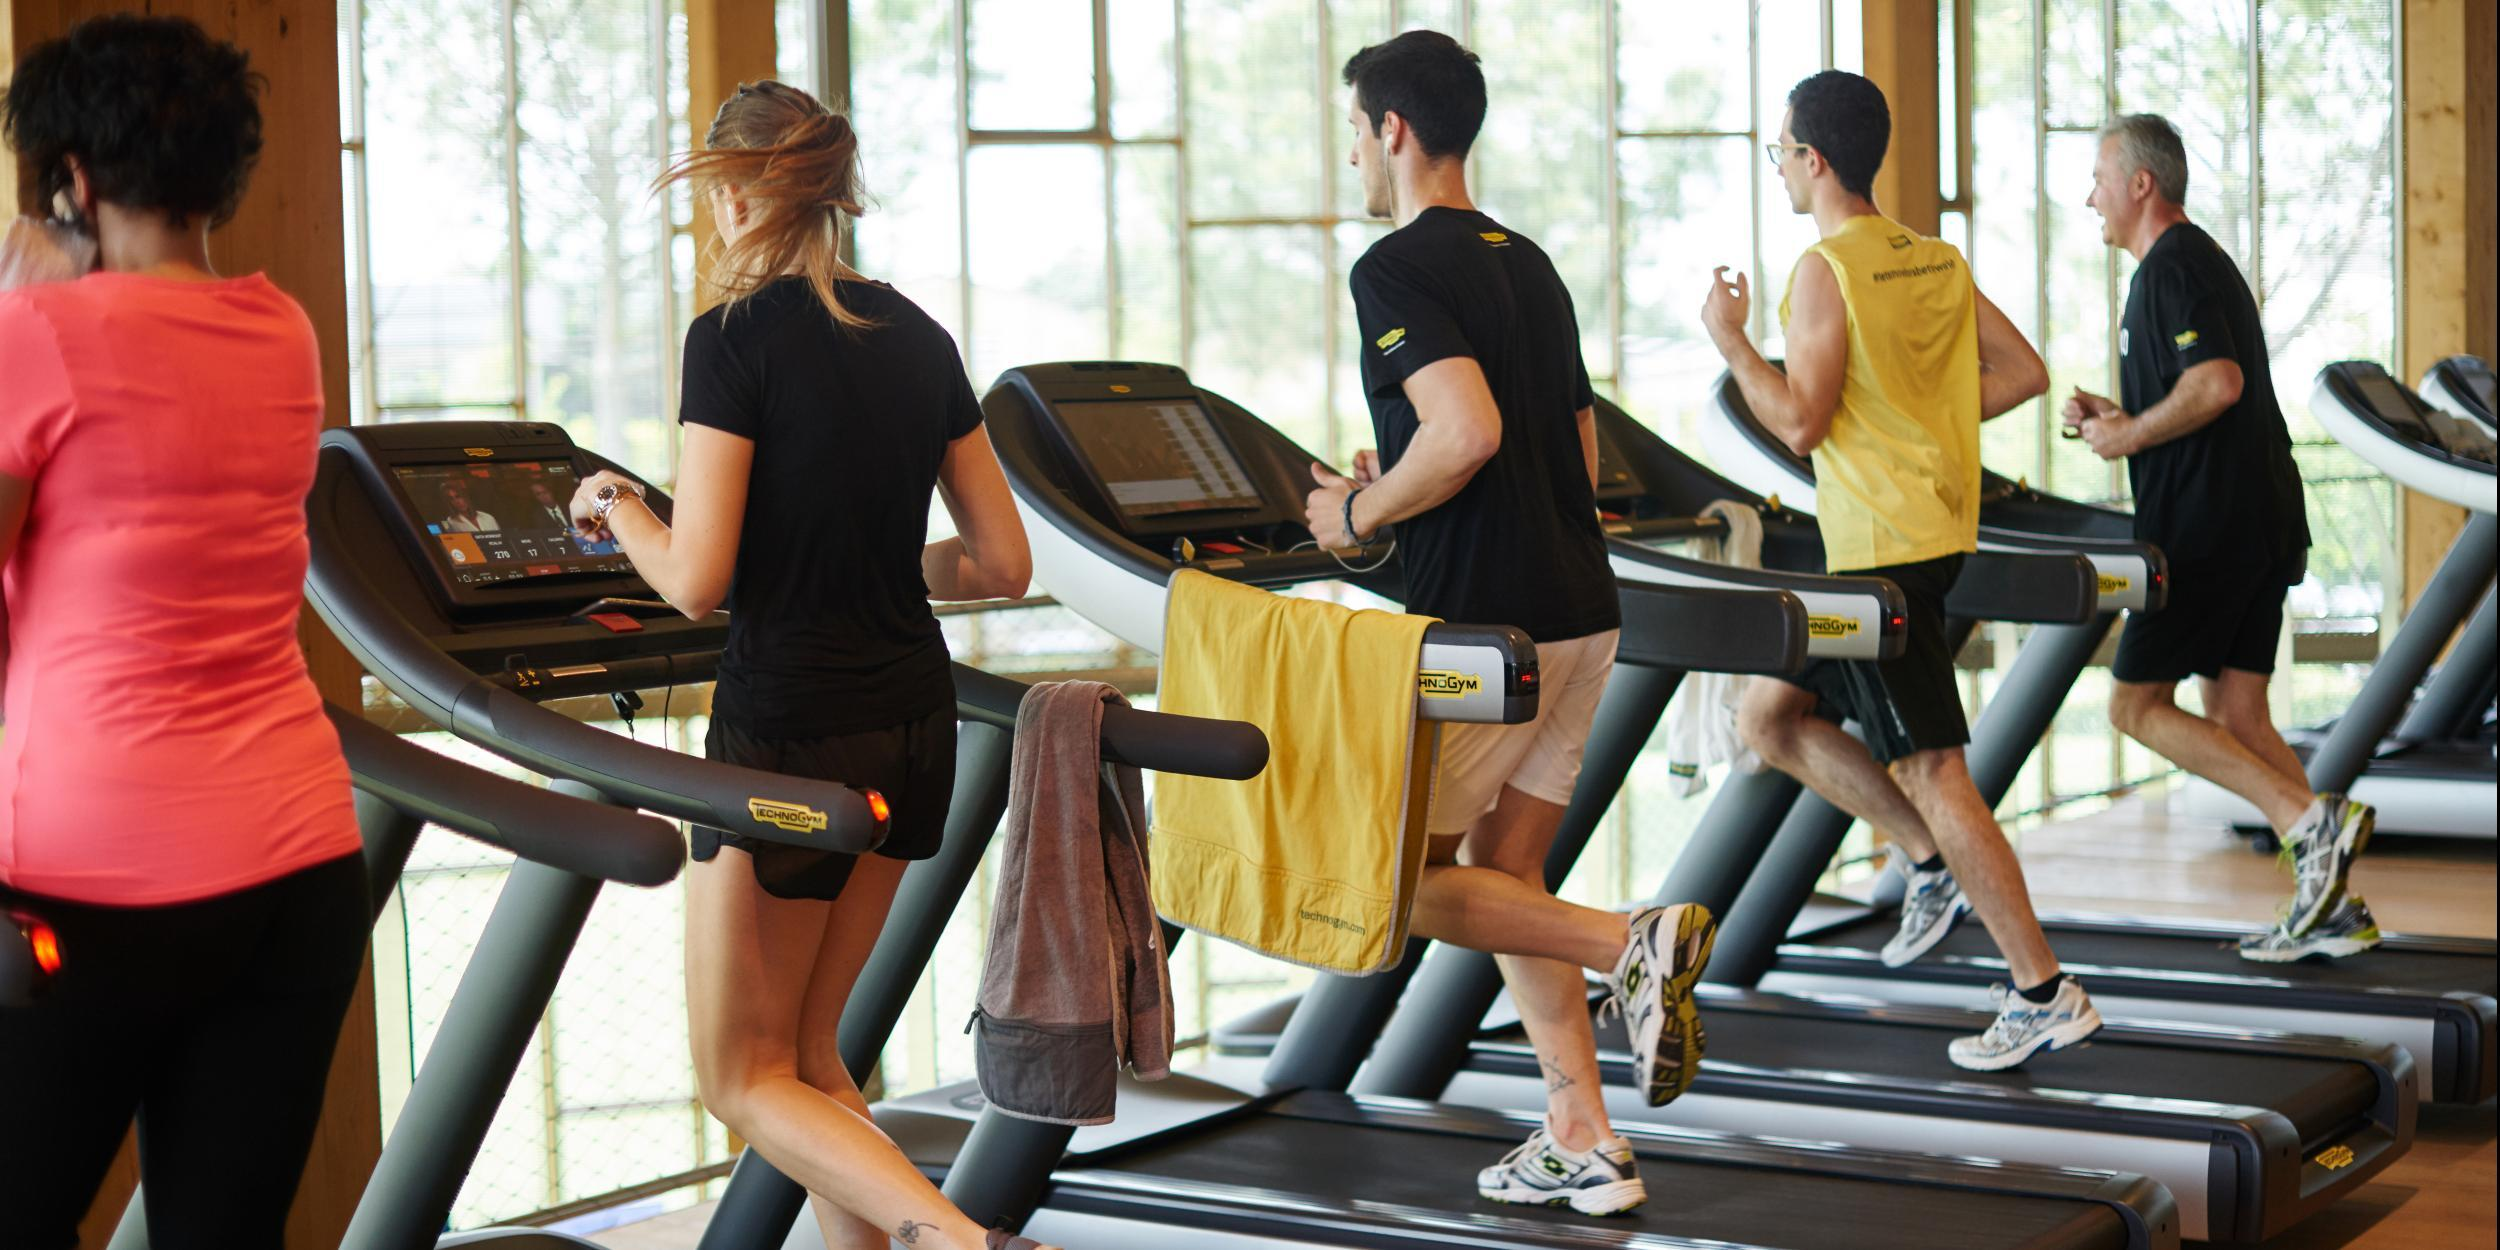 an analysis of narcissistic actions in the gym Brainlycom - for students by students brainly is the place to learn the world's largest social learning network for students.